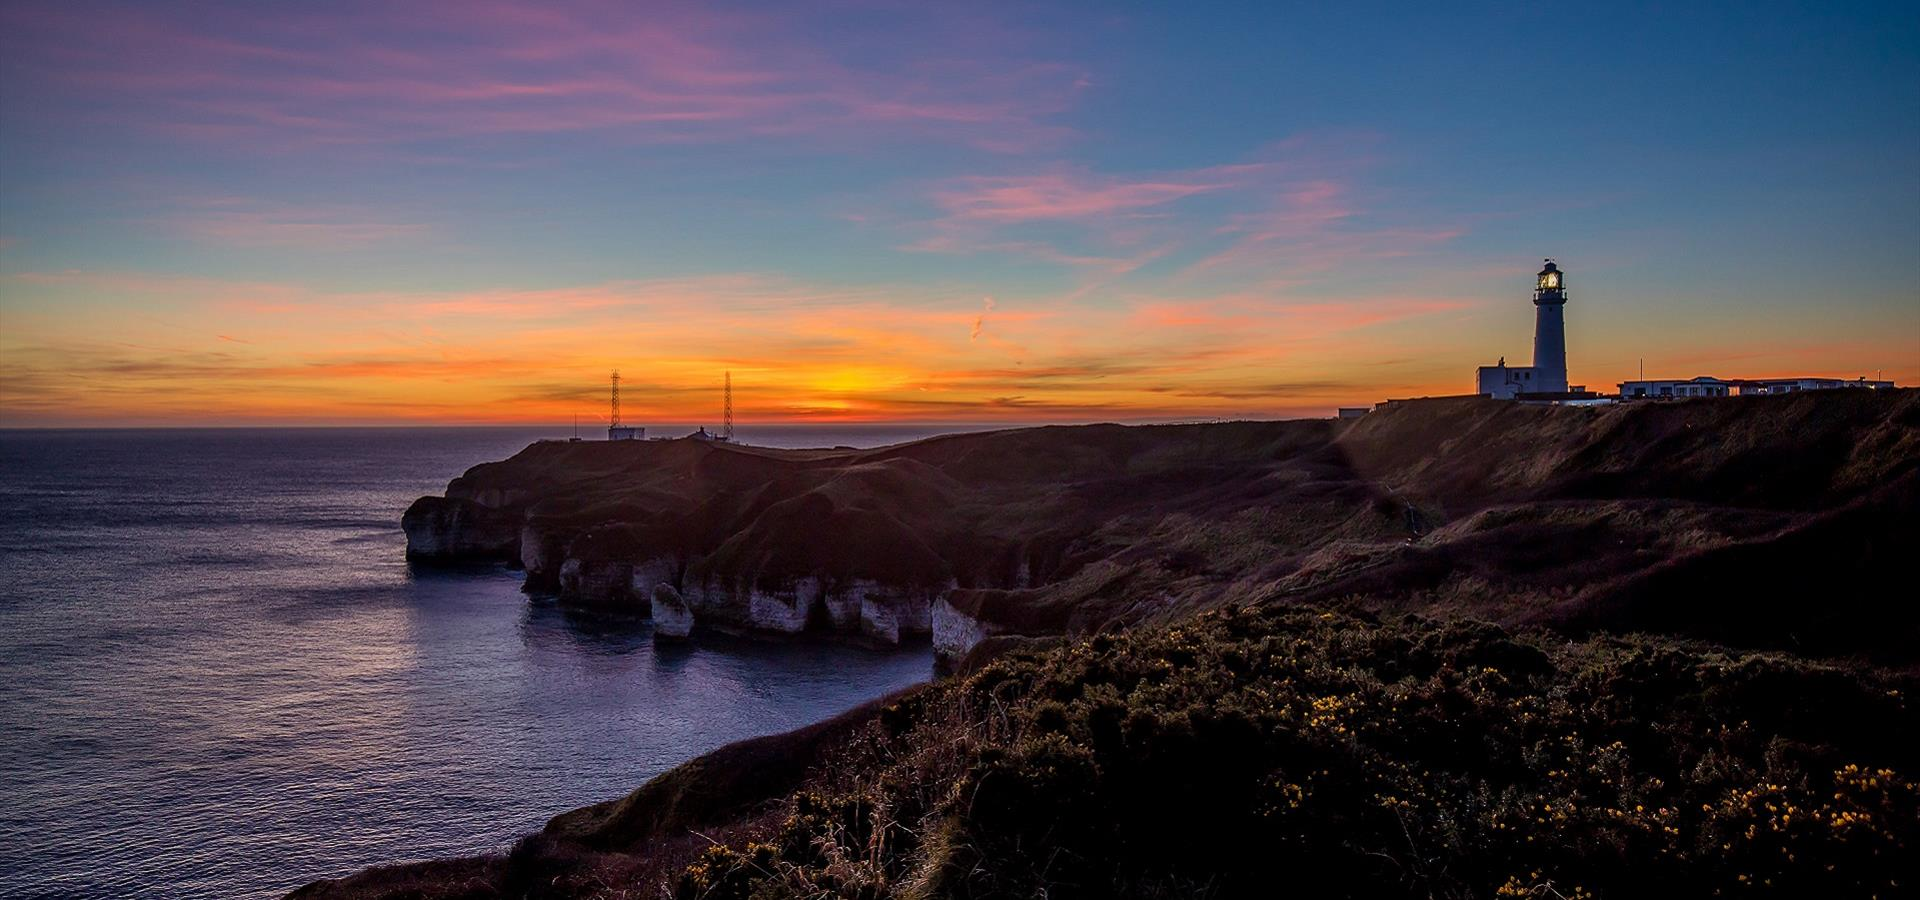 An image of the Sunrise at Flamborough Lighthouse by Charlotte Graham